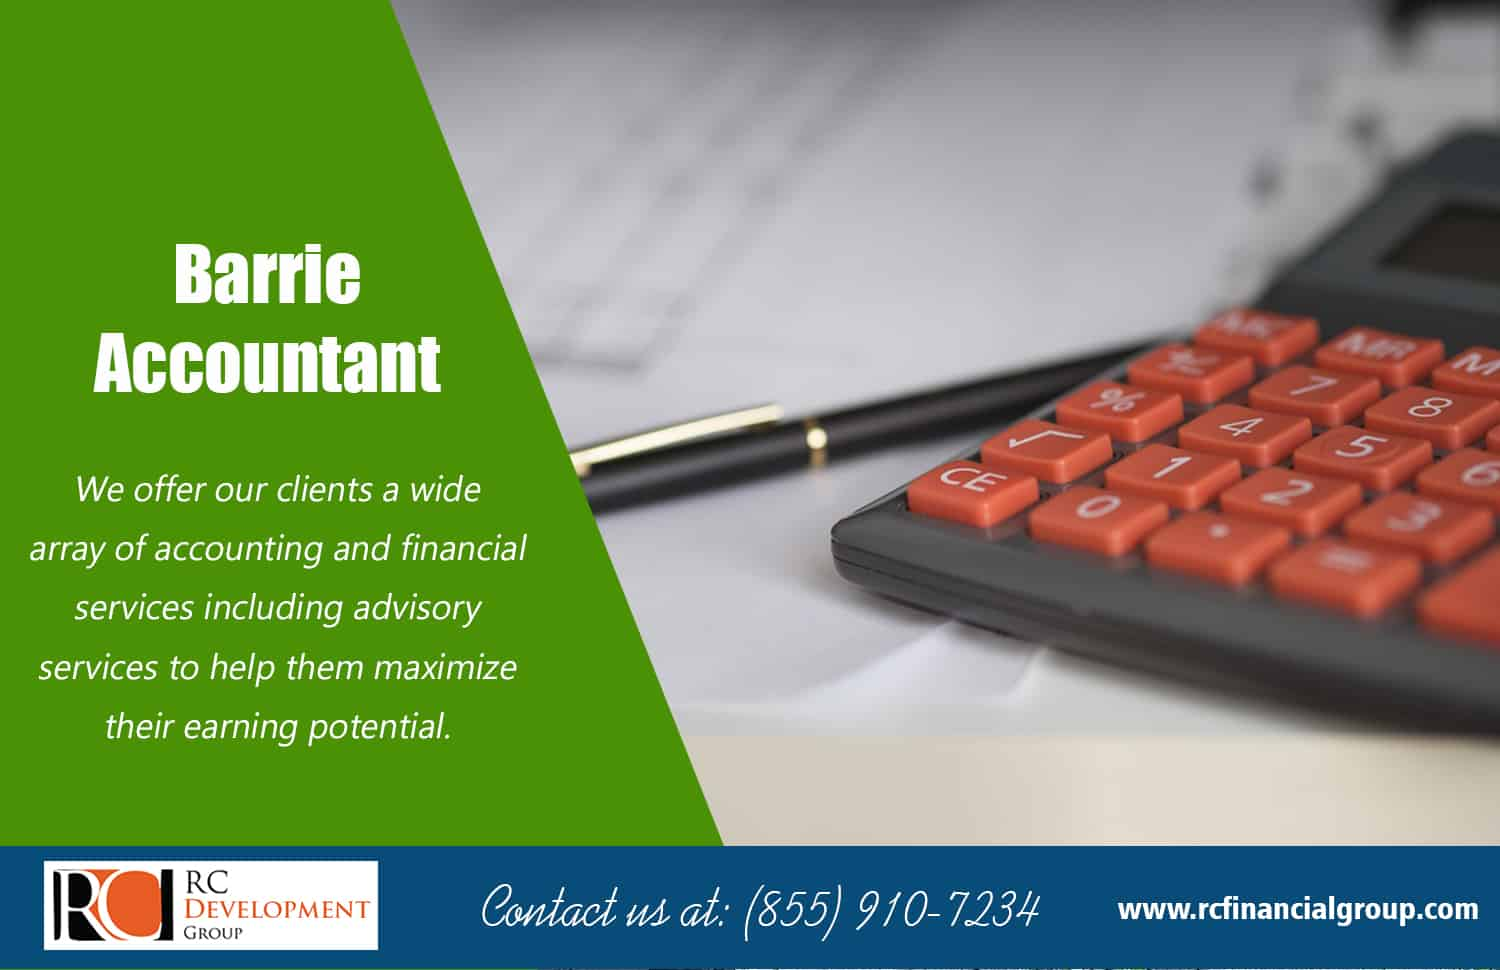 Barrie Accountant